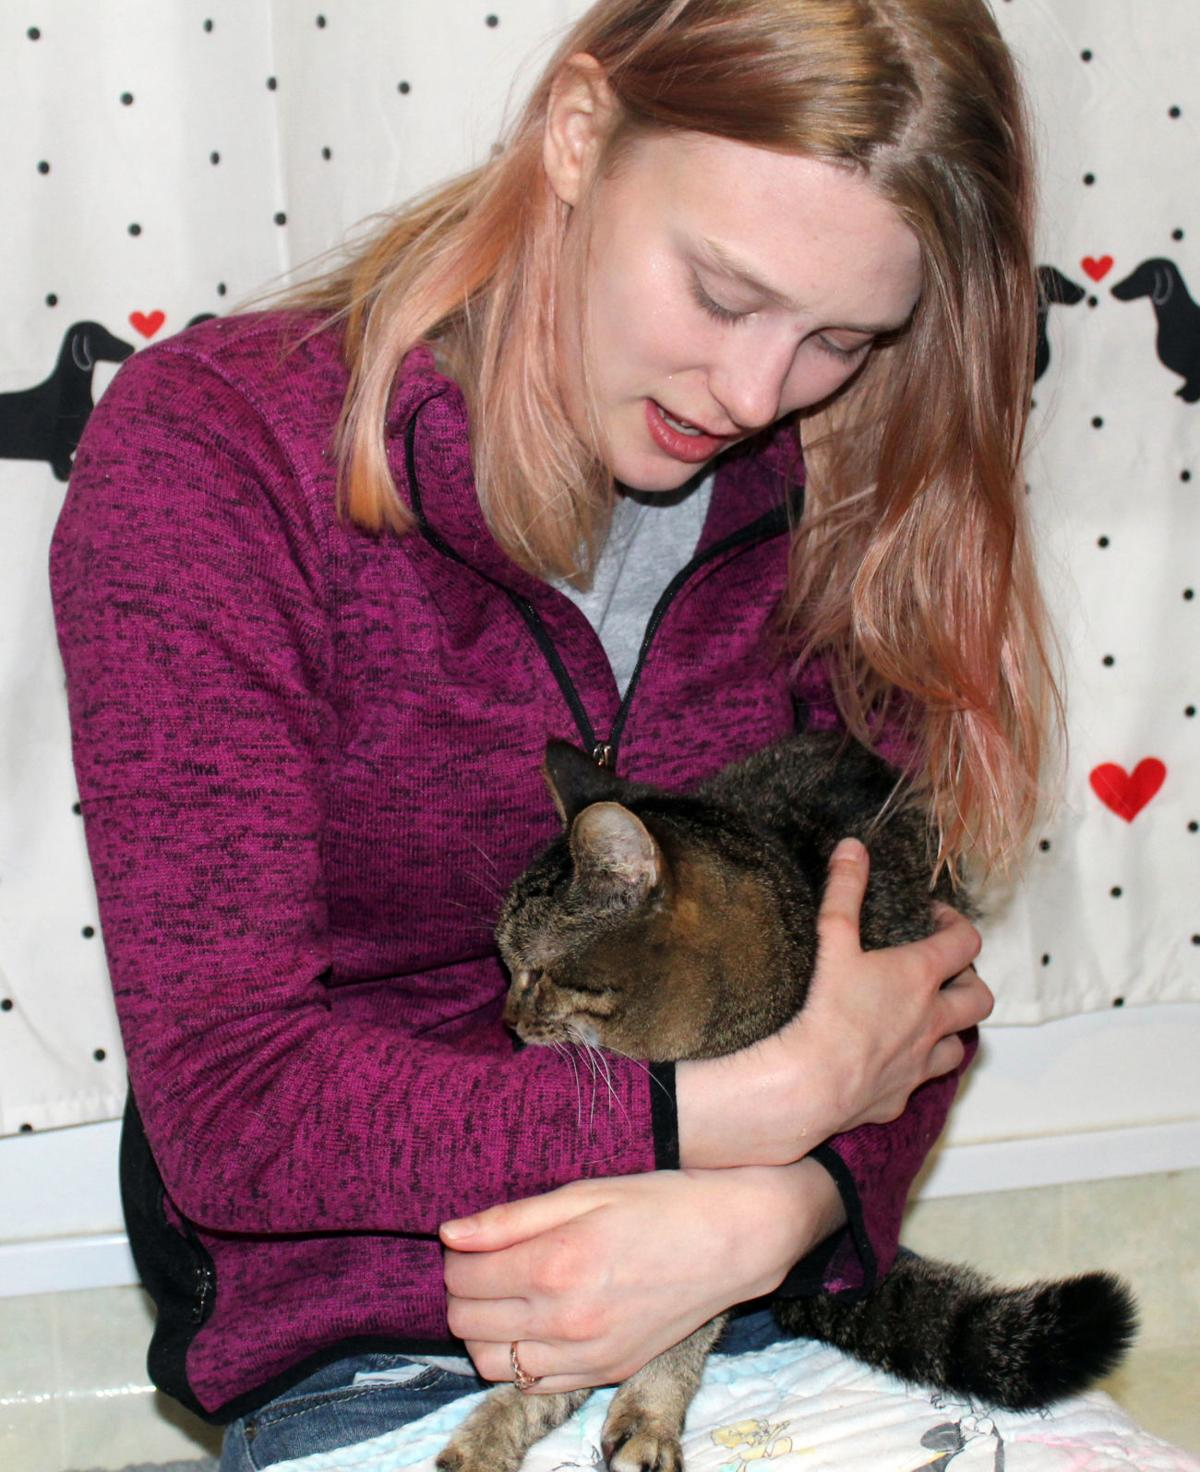 Stay at home orders make for quick adoptions at Dodge County Humane Society